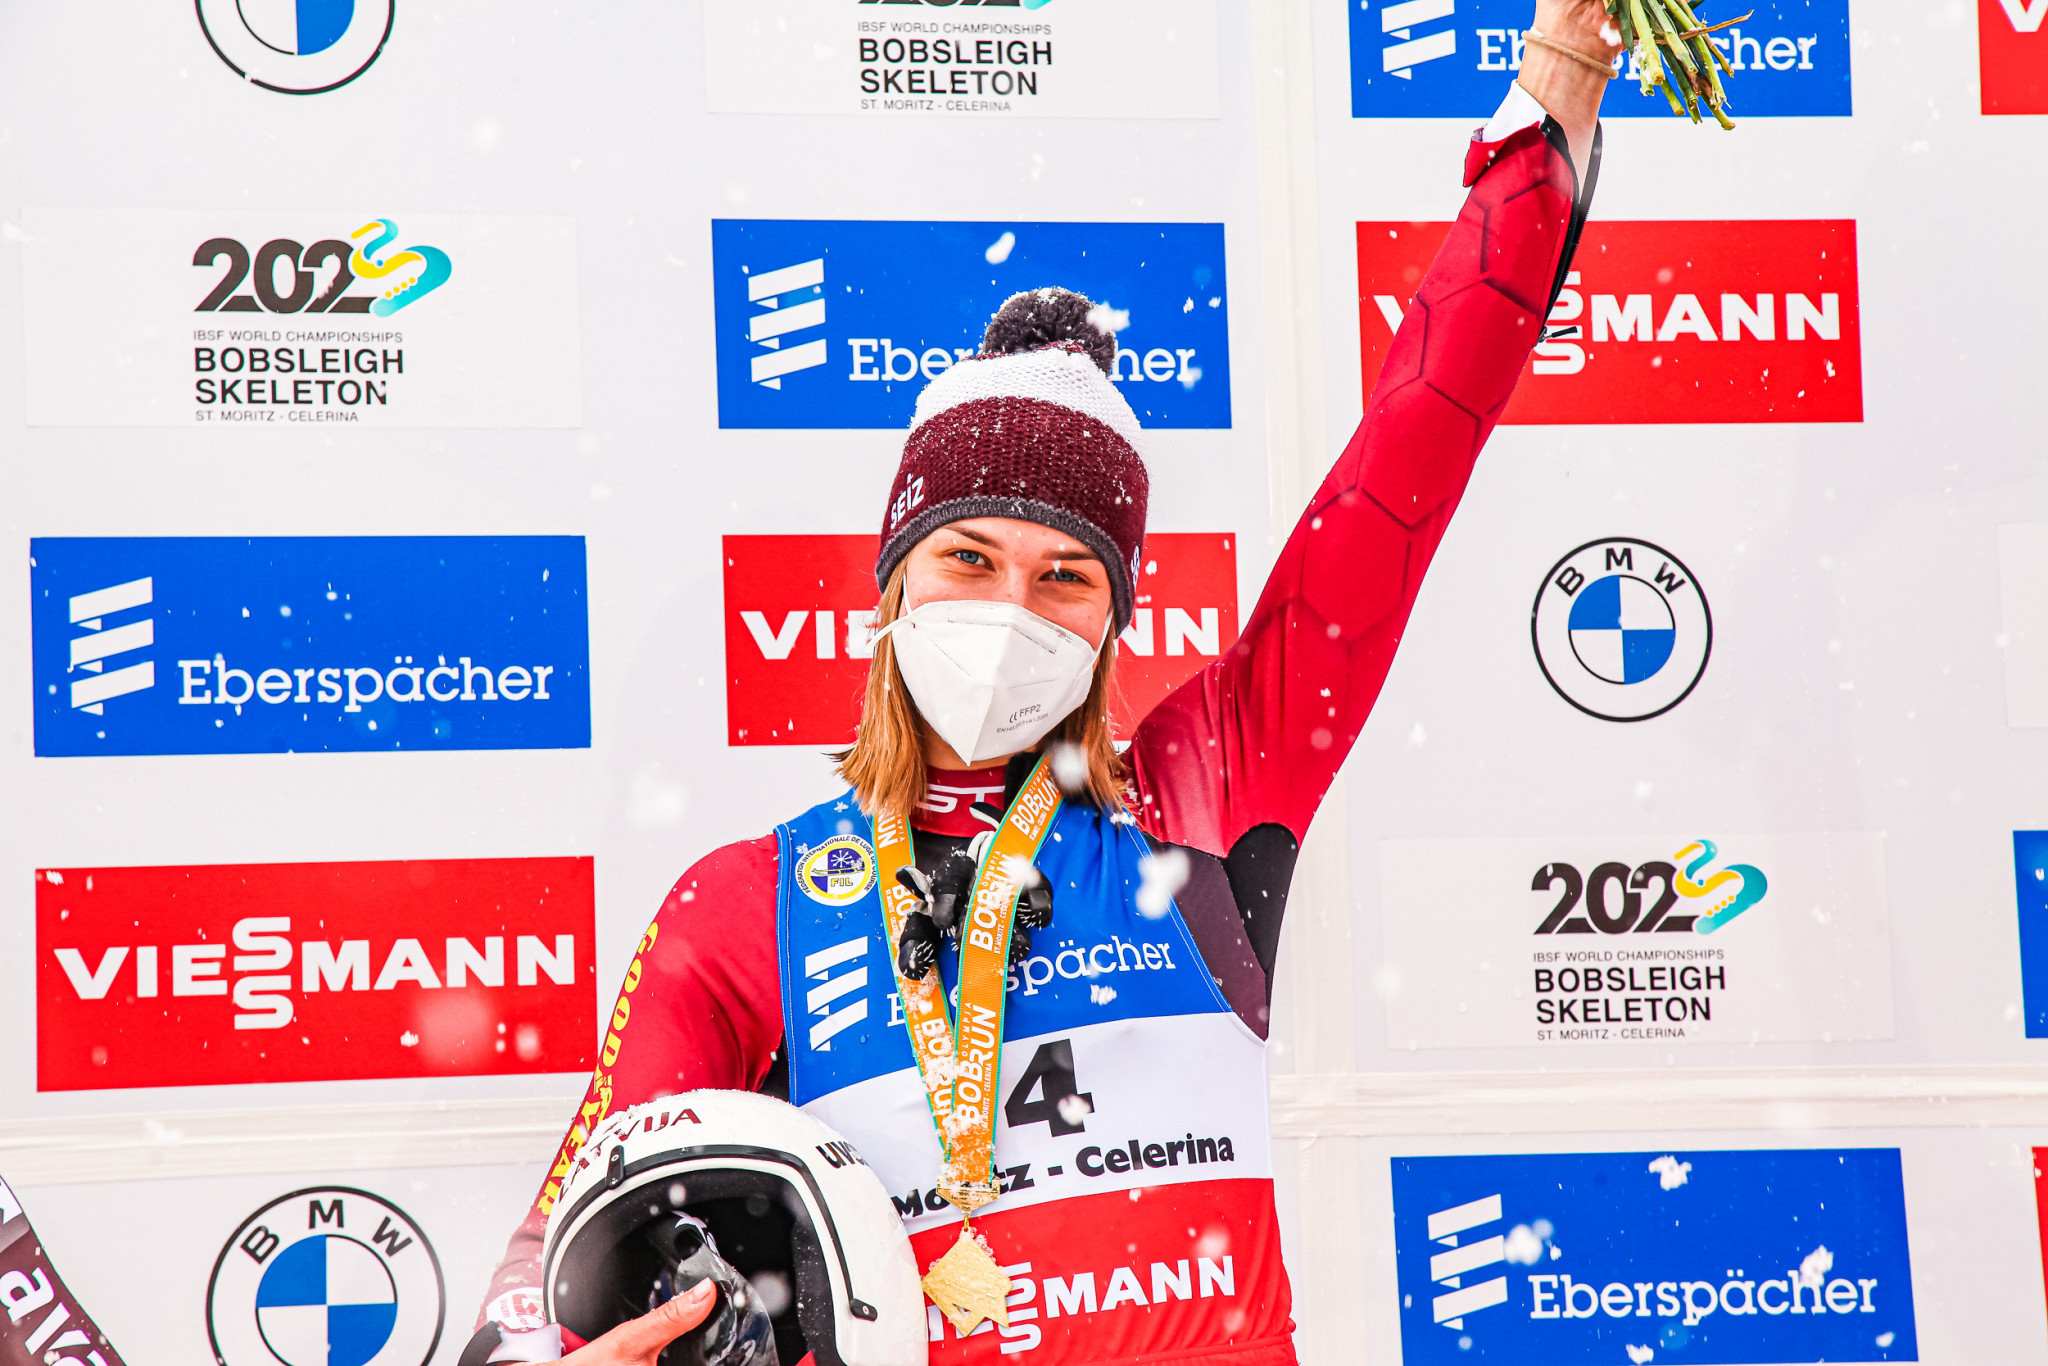 Elīna leva Vītola of Latvia topped the Luge World Cup podium for the first time in St Moritz ©FIL